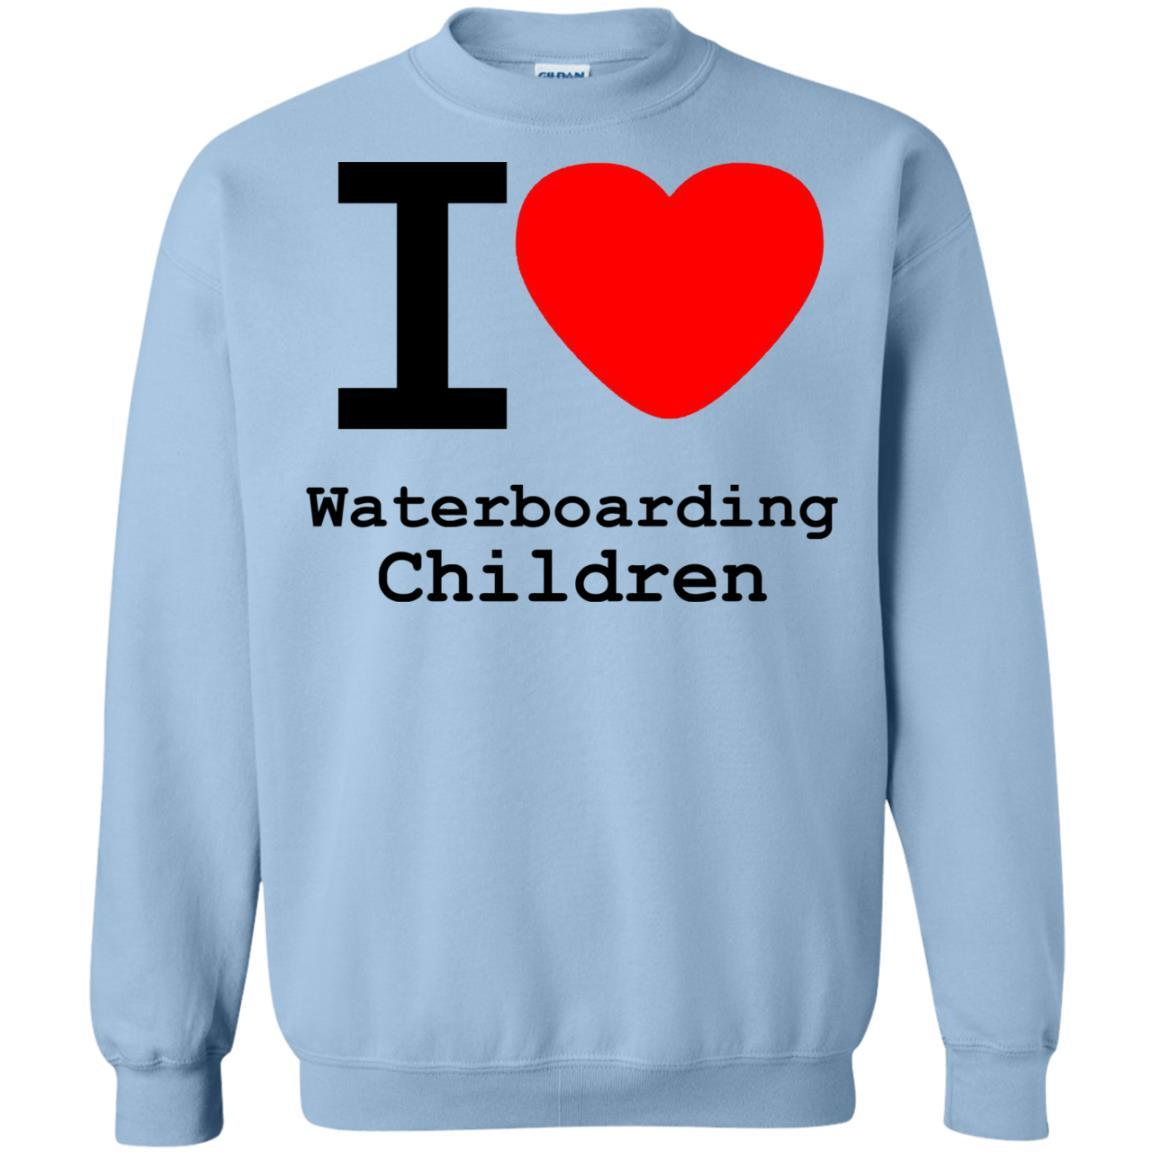 I love Waterboarding Children - Crewneck Pullover Sweatshirt Light Blue / 5XL